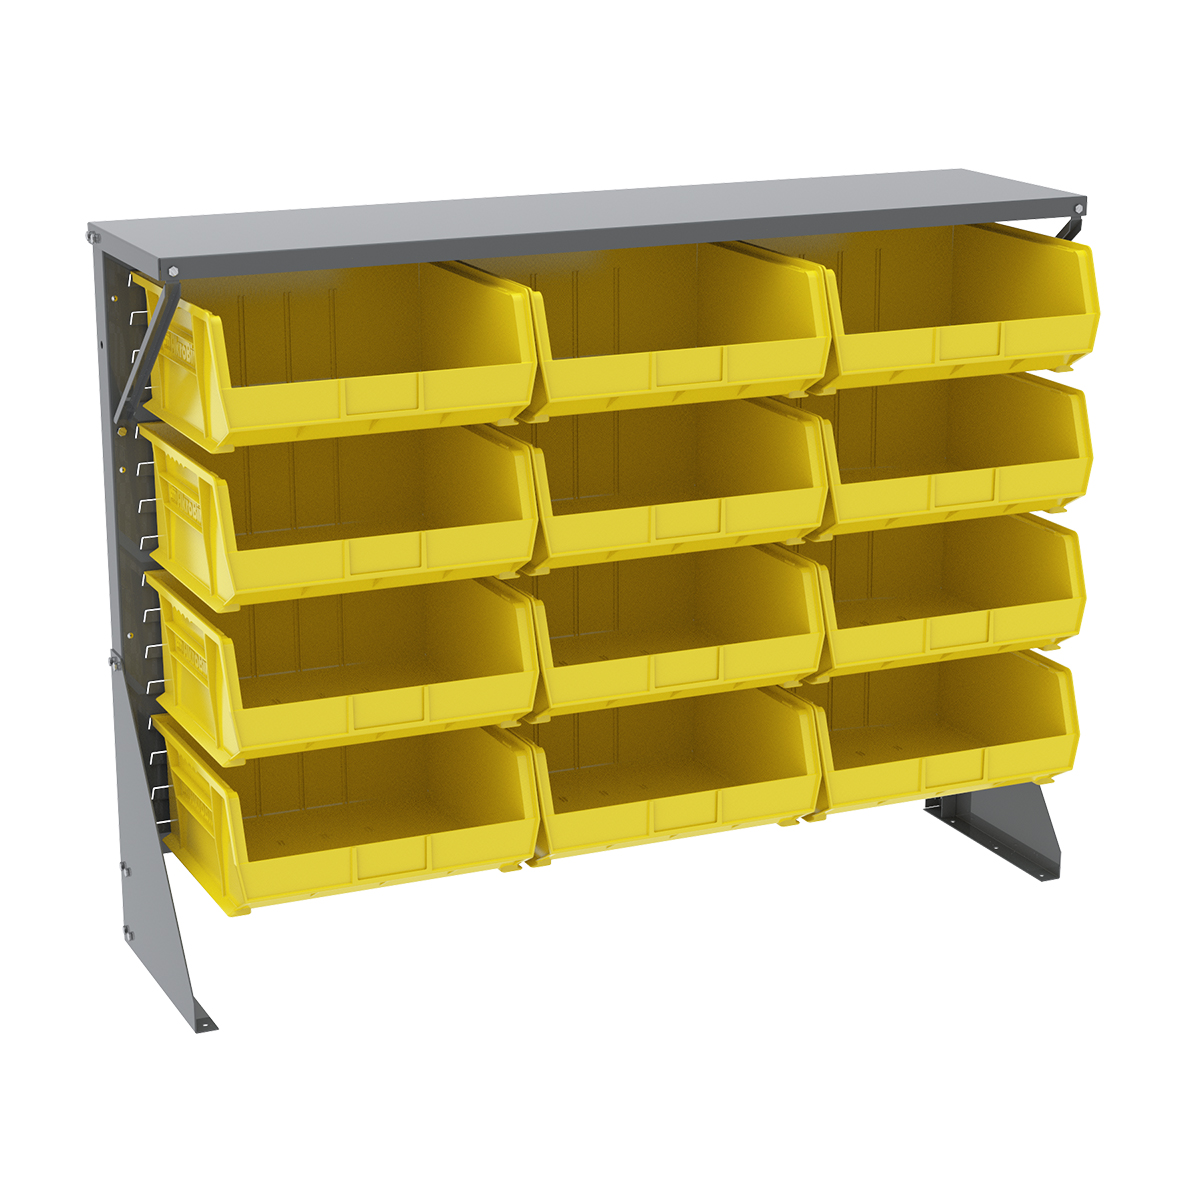 Item DISCONTINUED by Manufacturer.  Low Profile Floor Rack, 1-Sided, Shelf w/ 12 AkroBins, Gray/Yellow (30650GY250Y).  This item sold in carton quantities of 1.